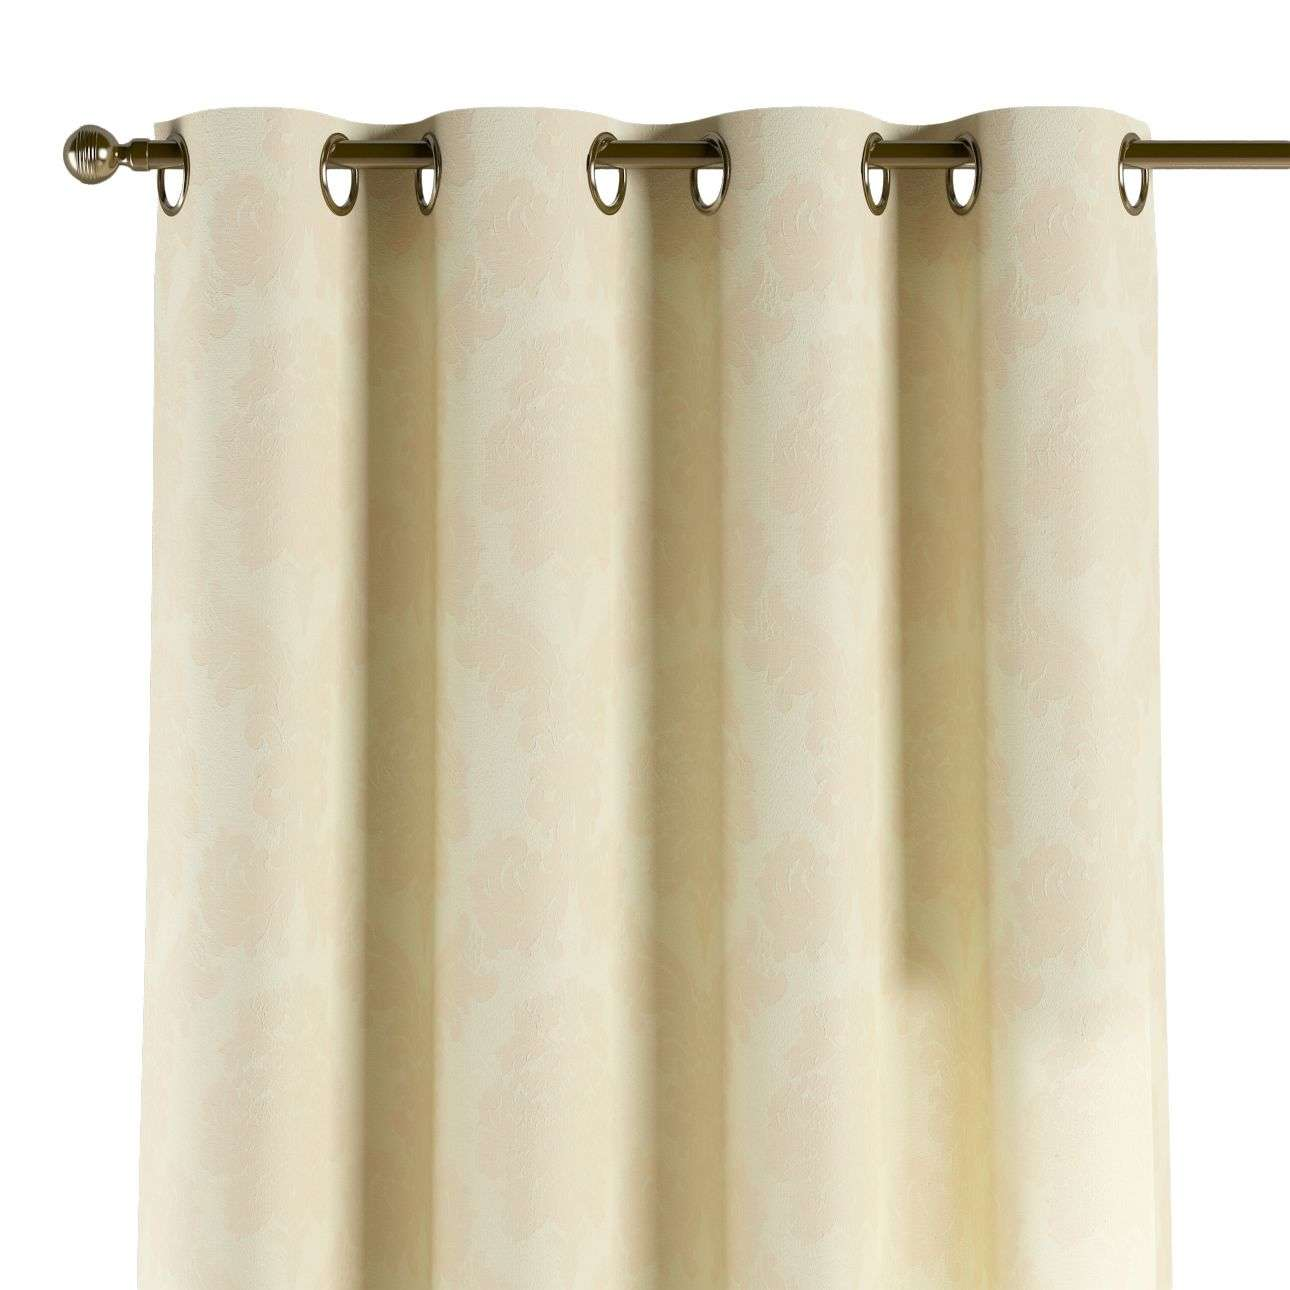 Eyelet curtains 130 x 260 cm (51 x 102 inch) in collection Damasco, fabric: 613-01